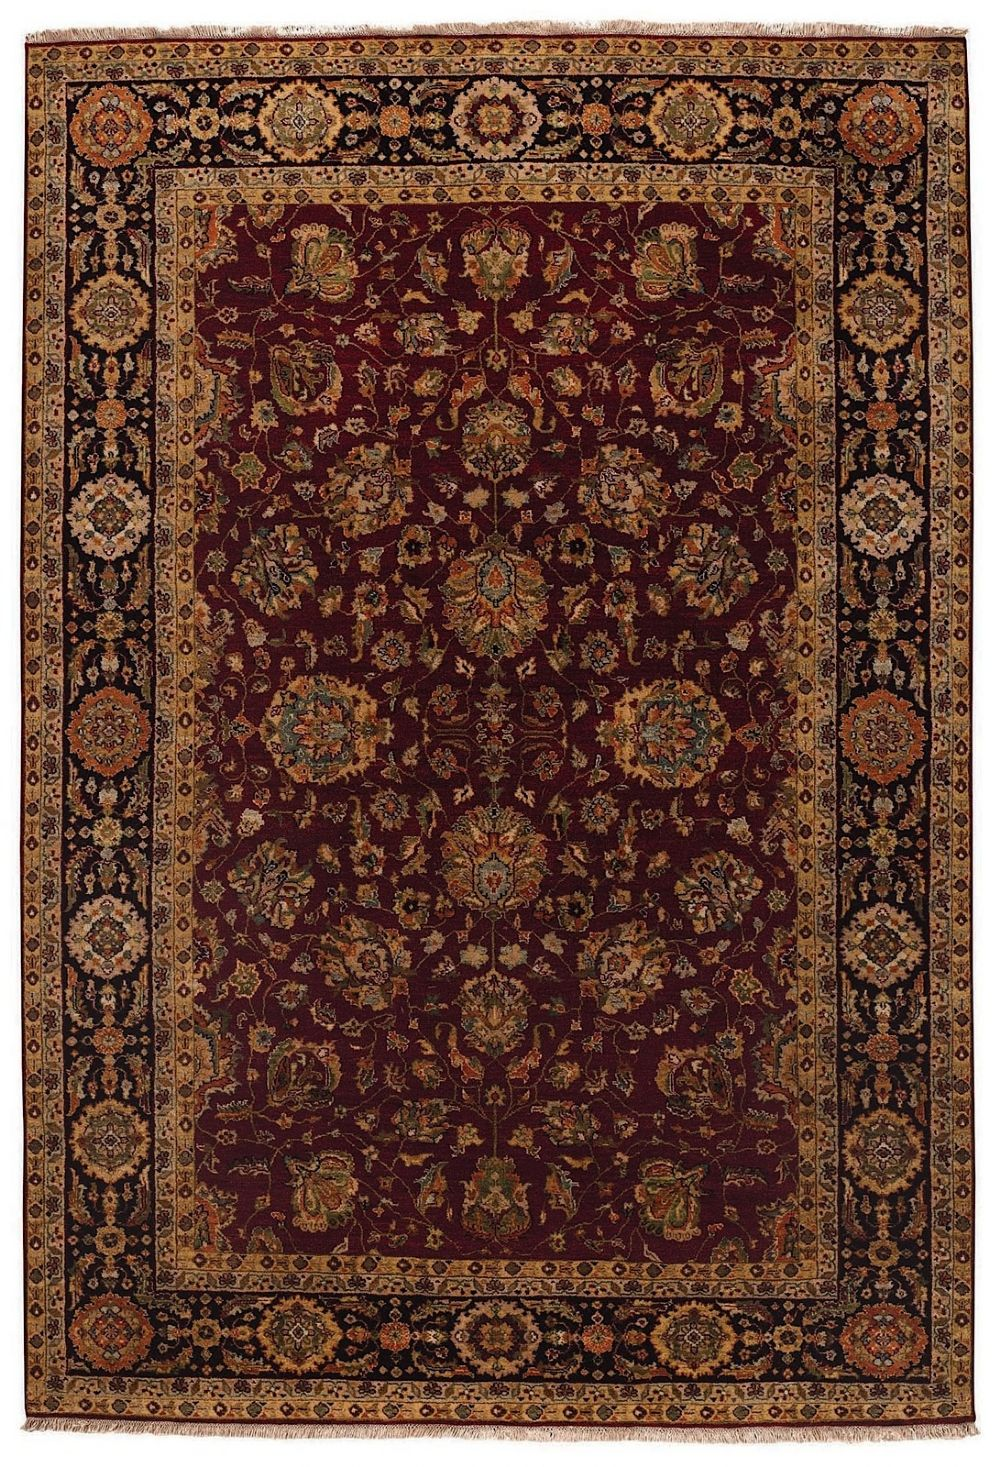 capel bella reserve-sultanabad traditional area rug collection